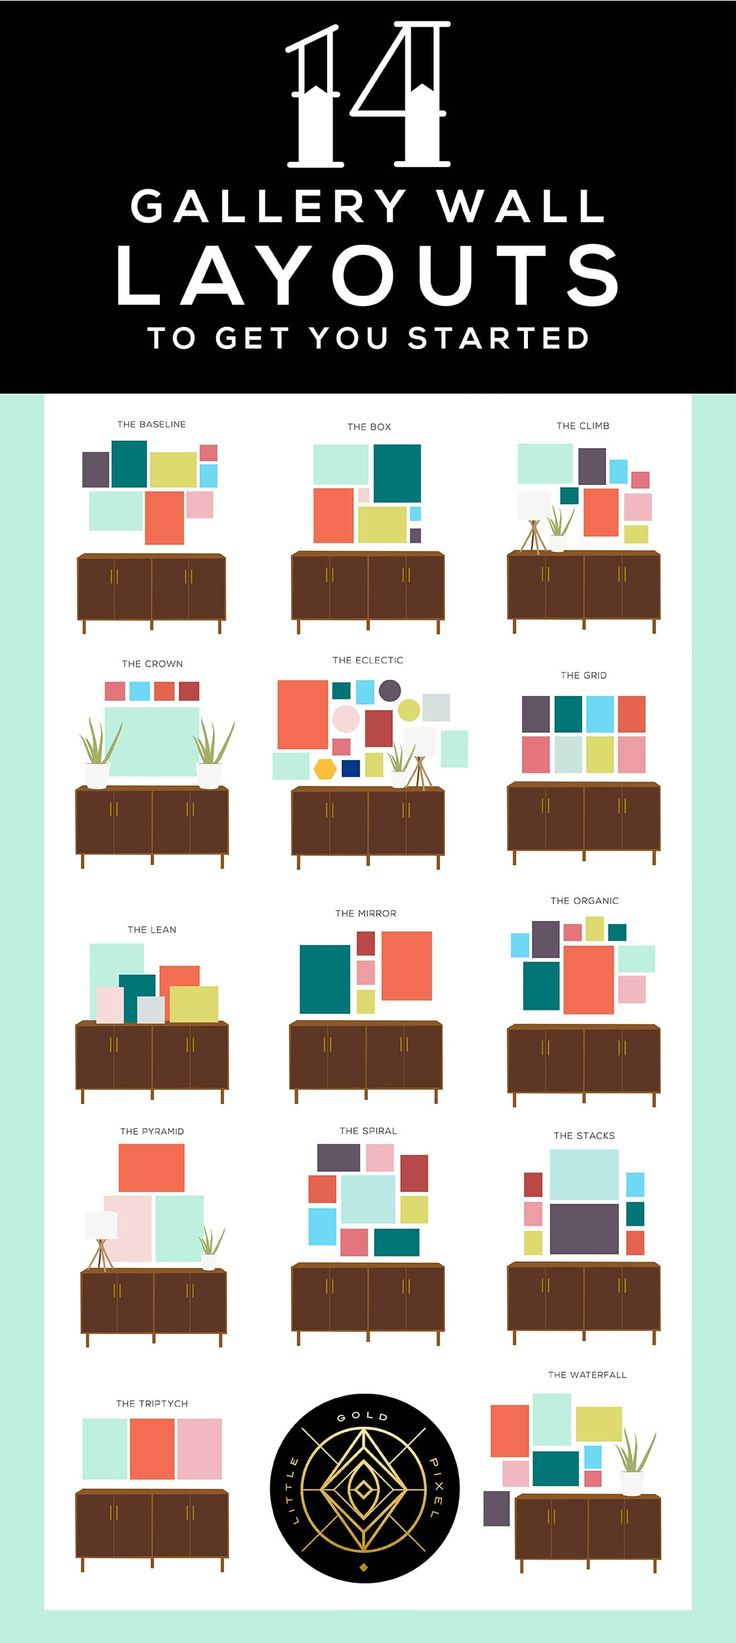 14 Gallery Wall Layouts to Get You Started